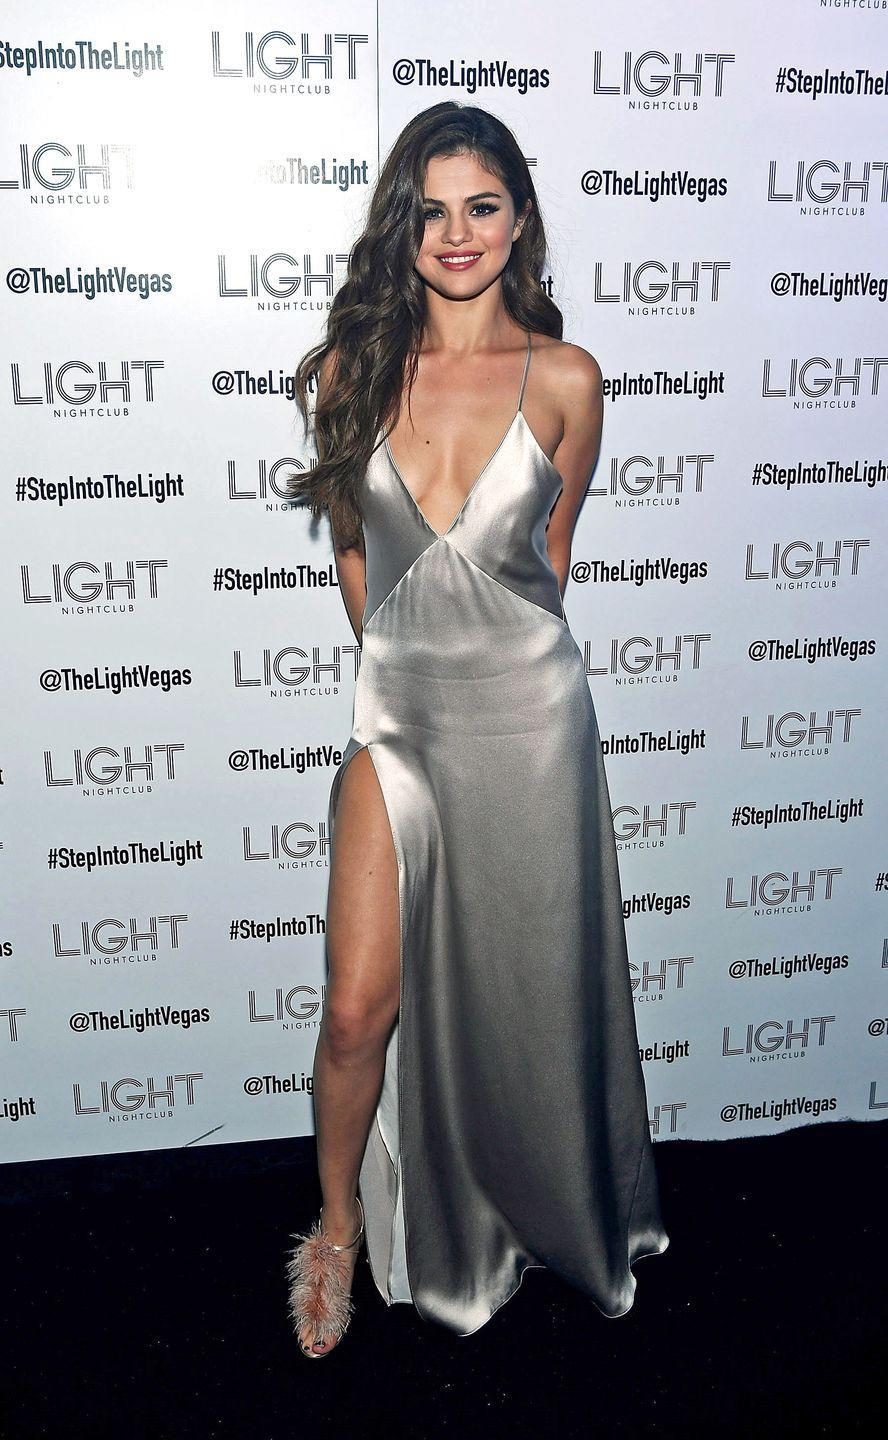 "<p>After kicking off her <a href=""https://www.redbookmag.com/fashion/celebrity-style/g28237/selena-gomez-revival-tour-looks/"" rel=""nofollow noopener"" target=""_blank"" data-ylk=""slk:Revival world tour"" class=""link rapid-noclick-resp"">Revival world tour</a> in Las Vegas, Gomez stepped out in a slinky silver slipdress by Galvan, paired with feathered Manolo Blahnik heels. </p>"